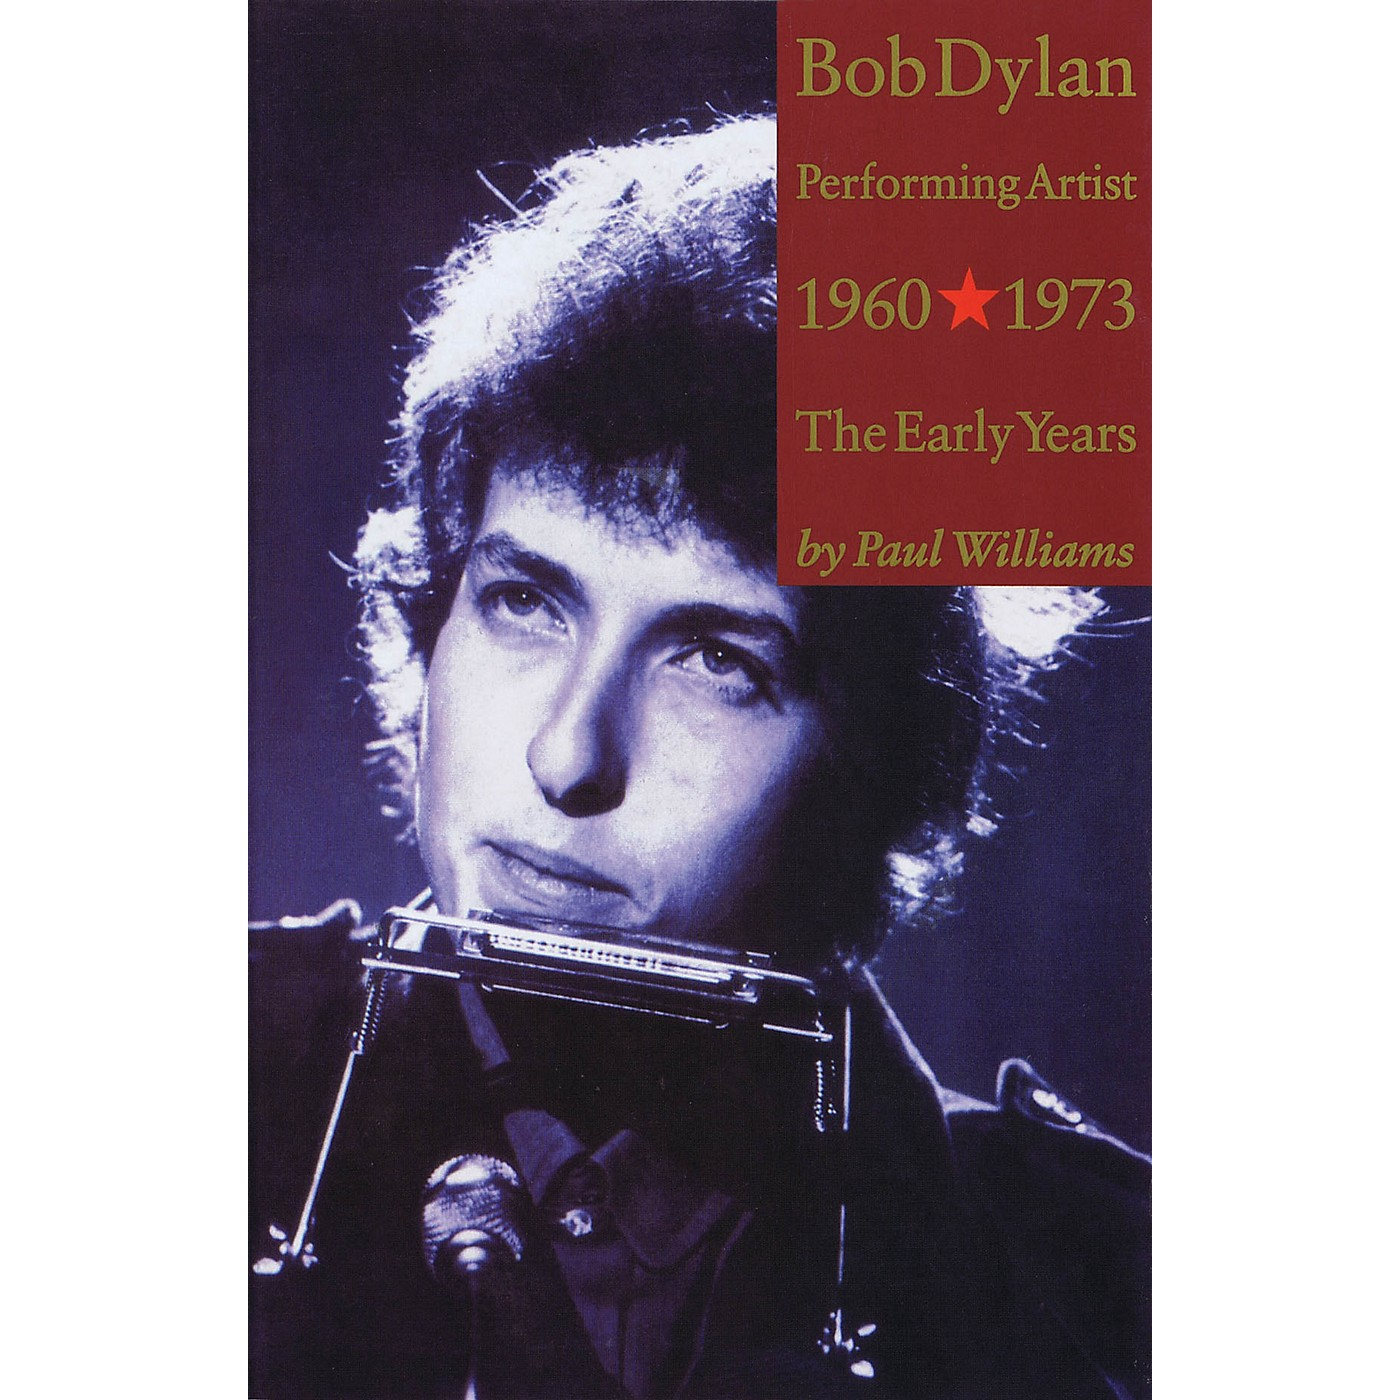 Omnibus Bob Dylan - Performing Artist, Volume 1 (The Early Years (1960-1973)) Omnibus Press Series Softcover thumbnail